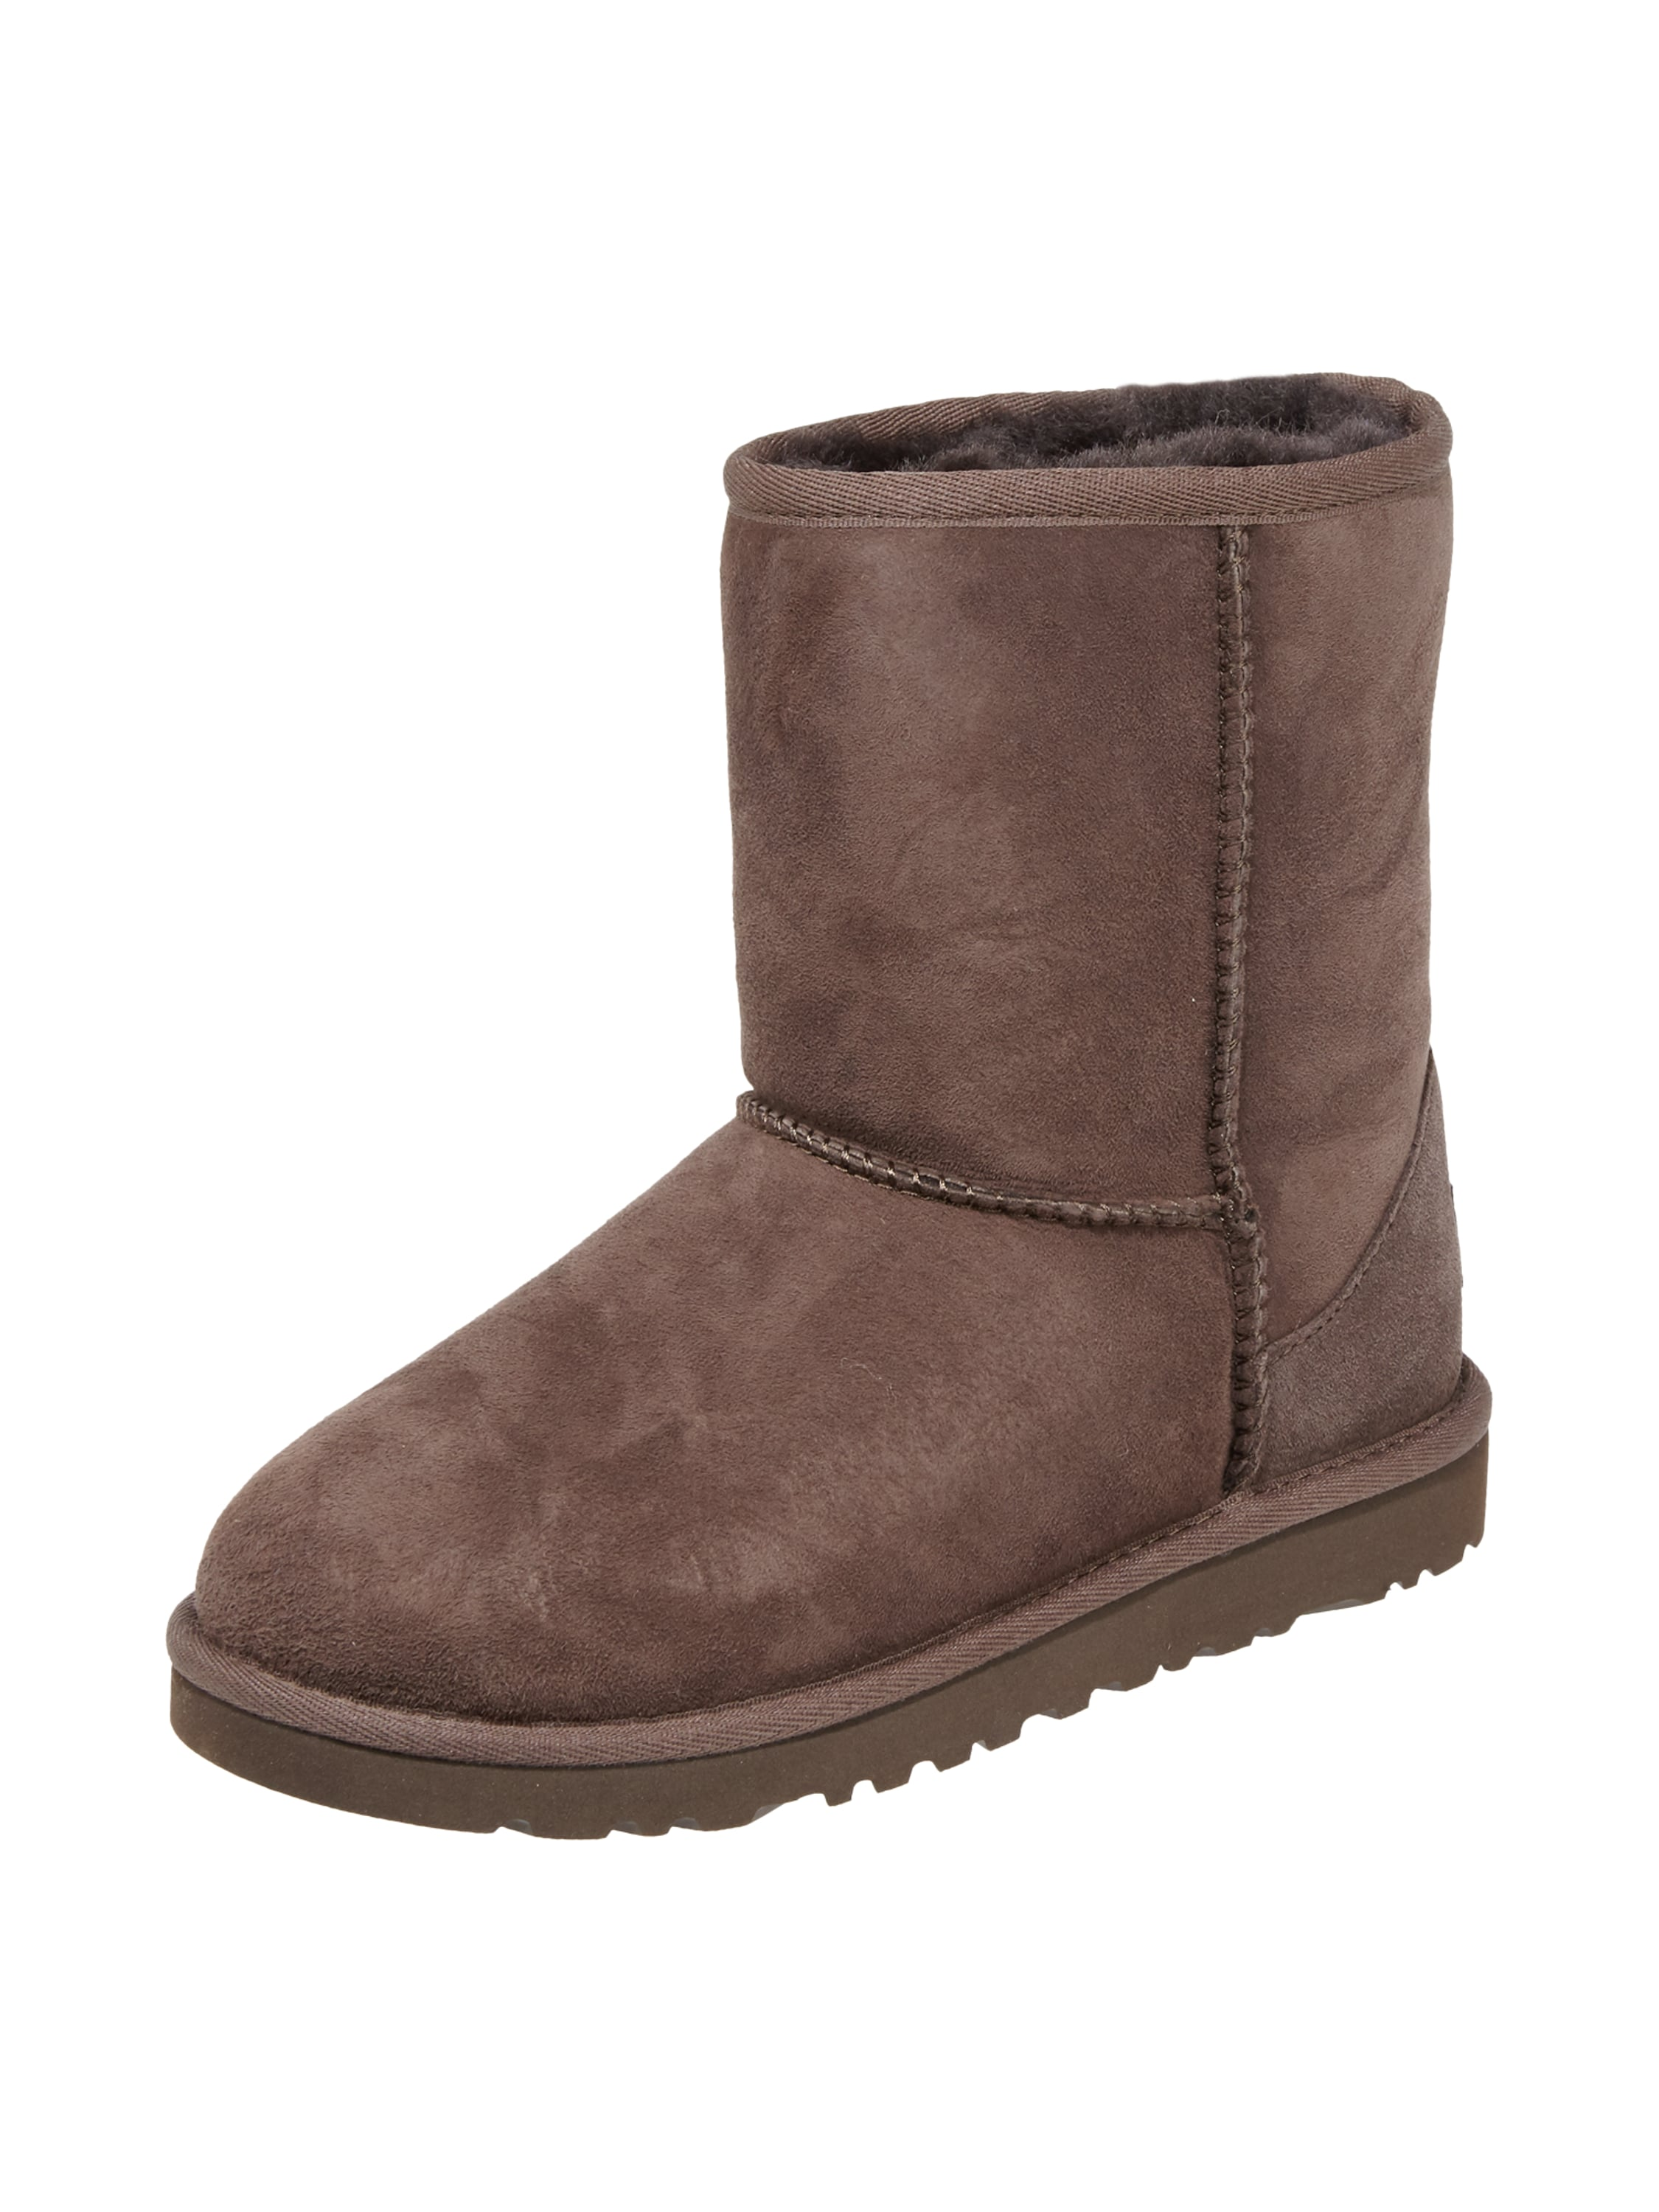 Receive a free holiday gift from UGG® with orders worth $ or more while supplies last - now through 12/7!